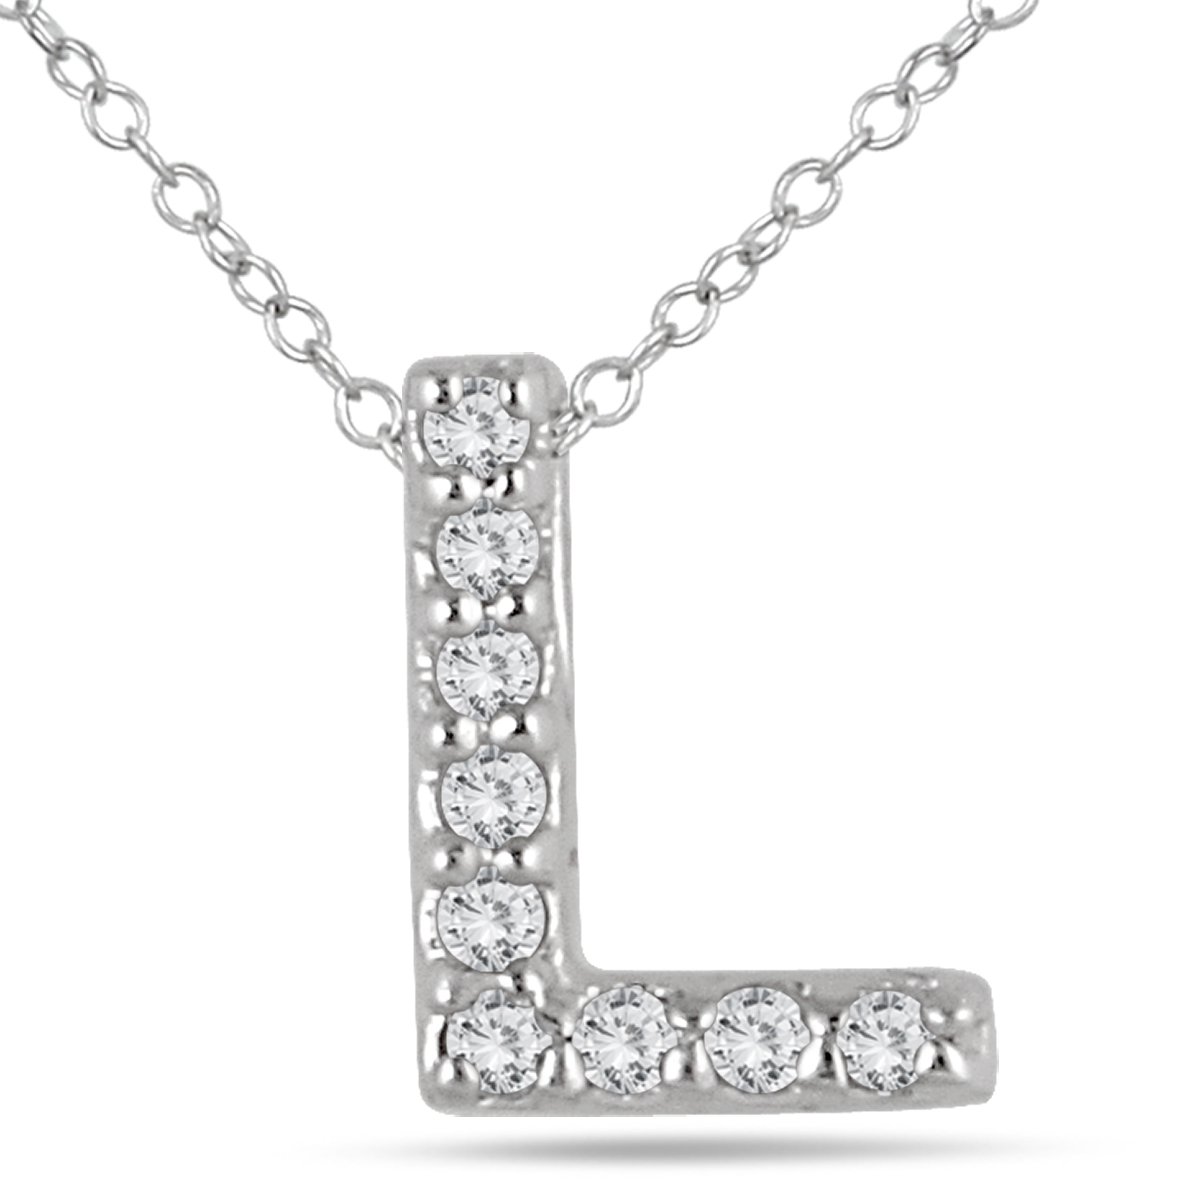 A stunning diamond initial pendant set with genuine white diamonds in 10K white gold. This personalized L diamond pendant is perfect for everyday wear. The pendant features 9 fiery white diamonds weighing a total of .06 carats. The stones are graded with an J-K-L color and an I2-I3 clarity. The stones have a white color and a sparkle. Diamond initial pendants are a stylish symbol of self or those one loves. The pendant measures 8x6mm and hangs from an 18 inch chain also crafted in white gold. A nice charm size pendant that can be worn alone or with other necklaces. Detailed setting workmanship combine with a durable gold setting and hand matched diamonds to create a personalized pendant that is sure to be treasured forever.